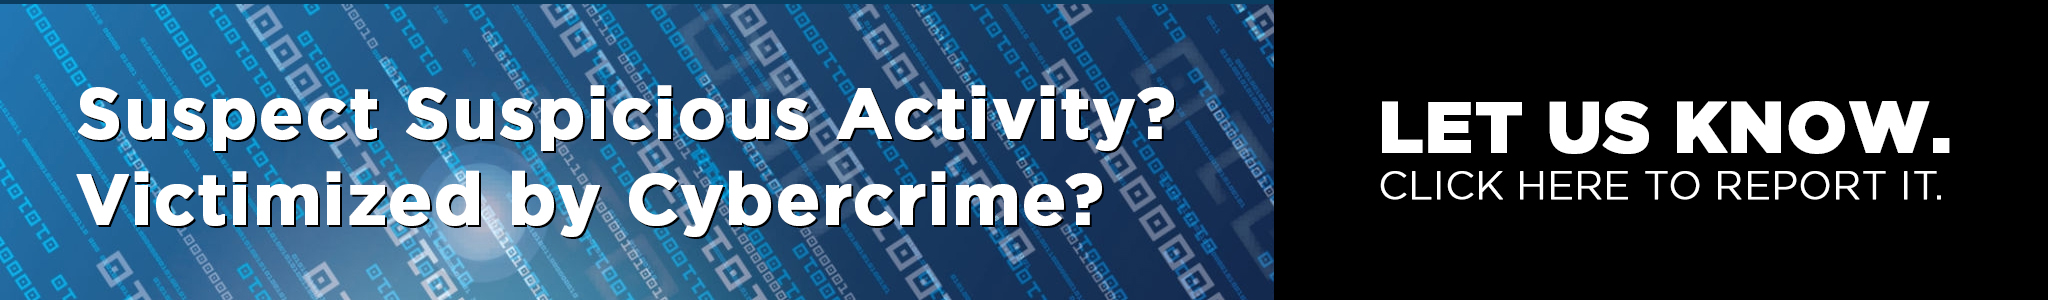 Report Cybercrime to N.C. Department of Information Technology